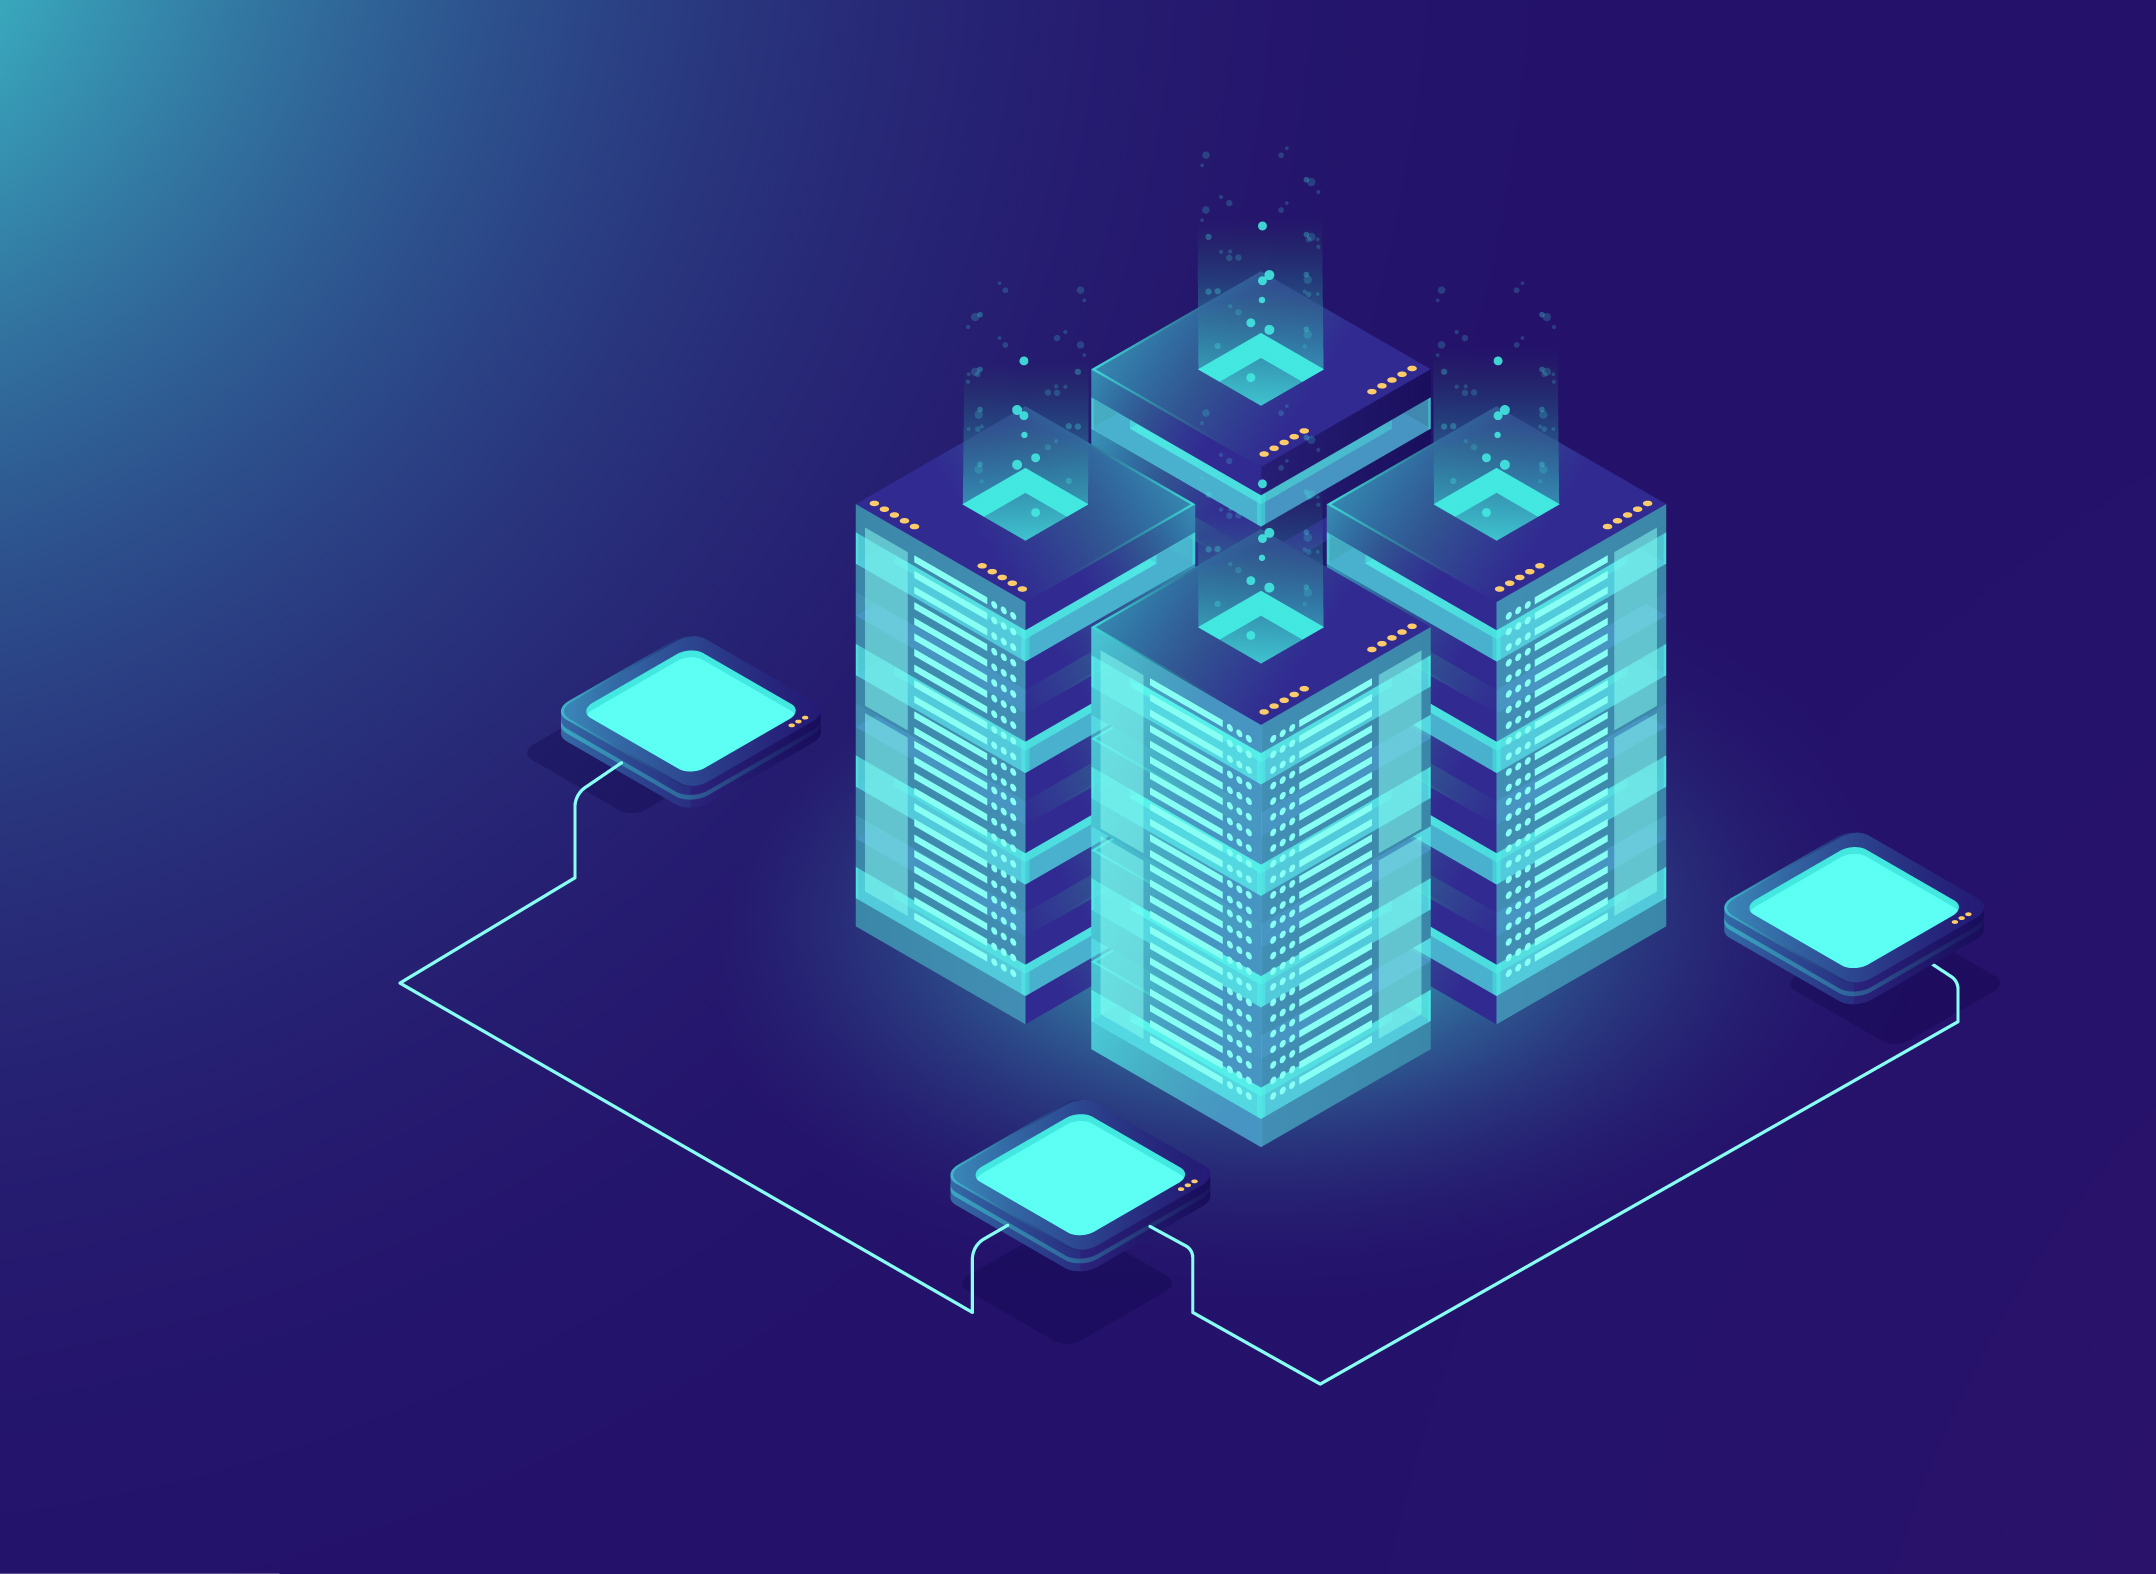 Mine JREX Tokens with Storage Space & Computing Power - Share your storage space and computing power with the network in exchange for JREX tokens. You can use those tokens to purchase more services offered on the network or cash them out for real-world currency.